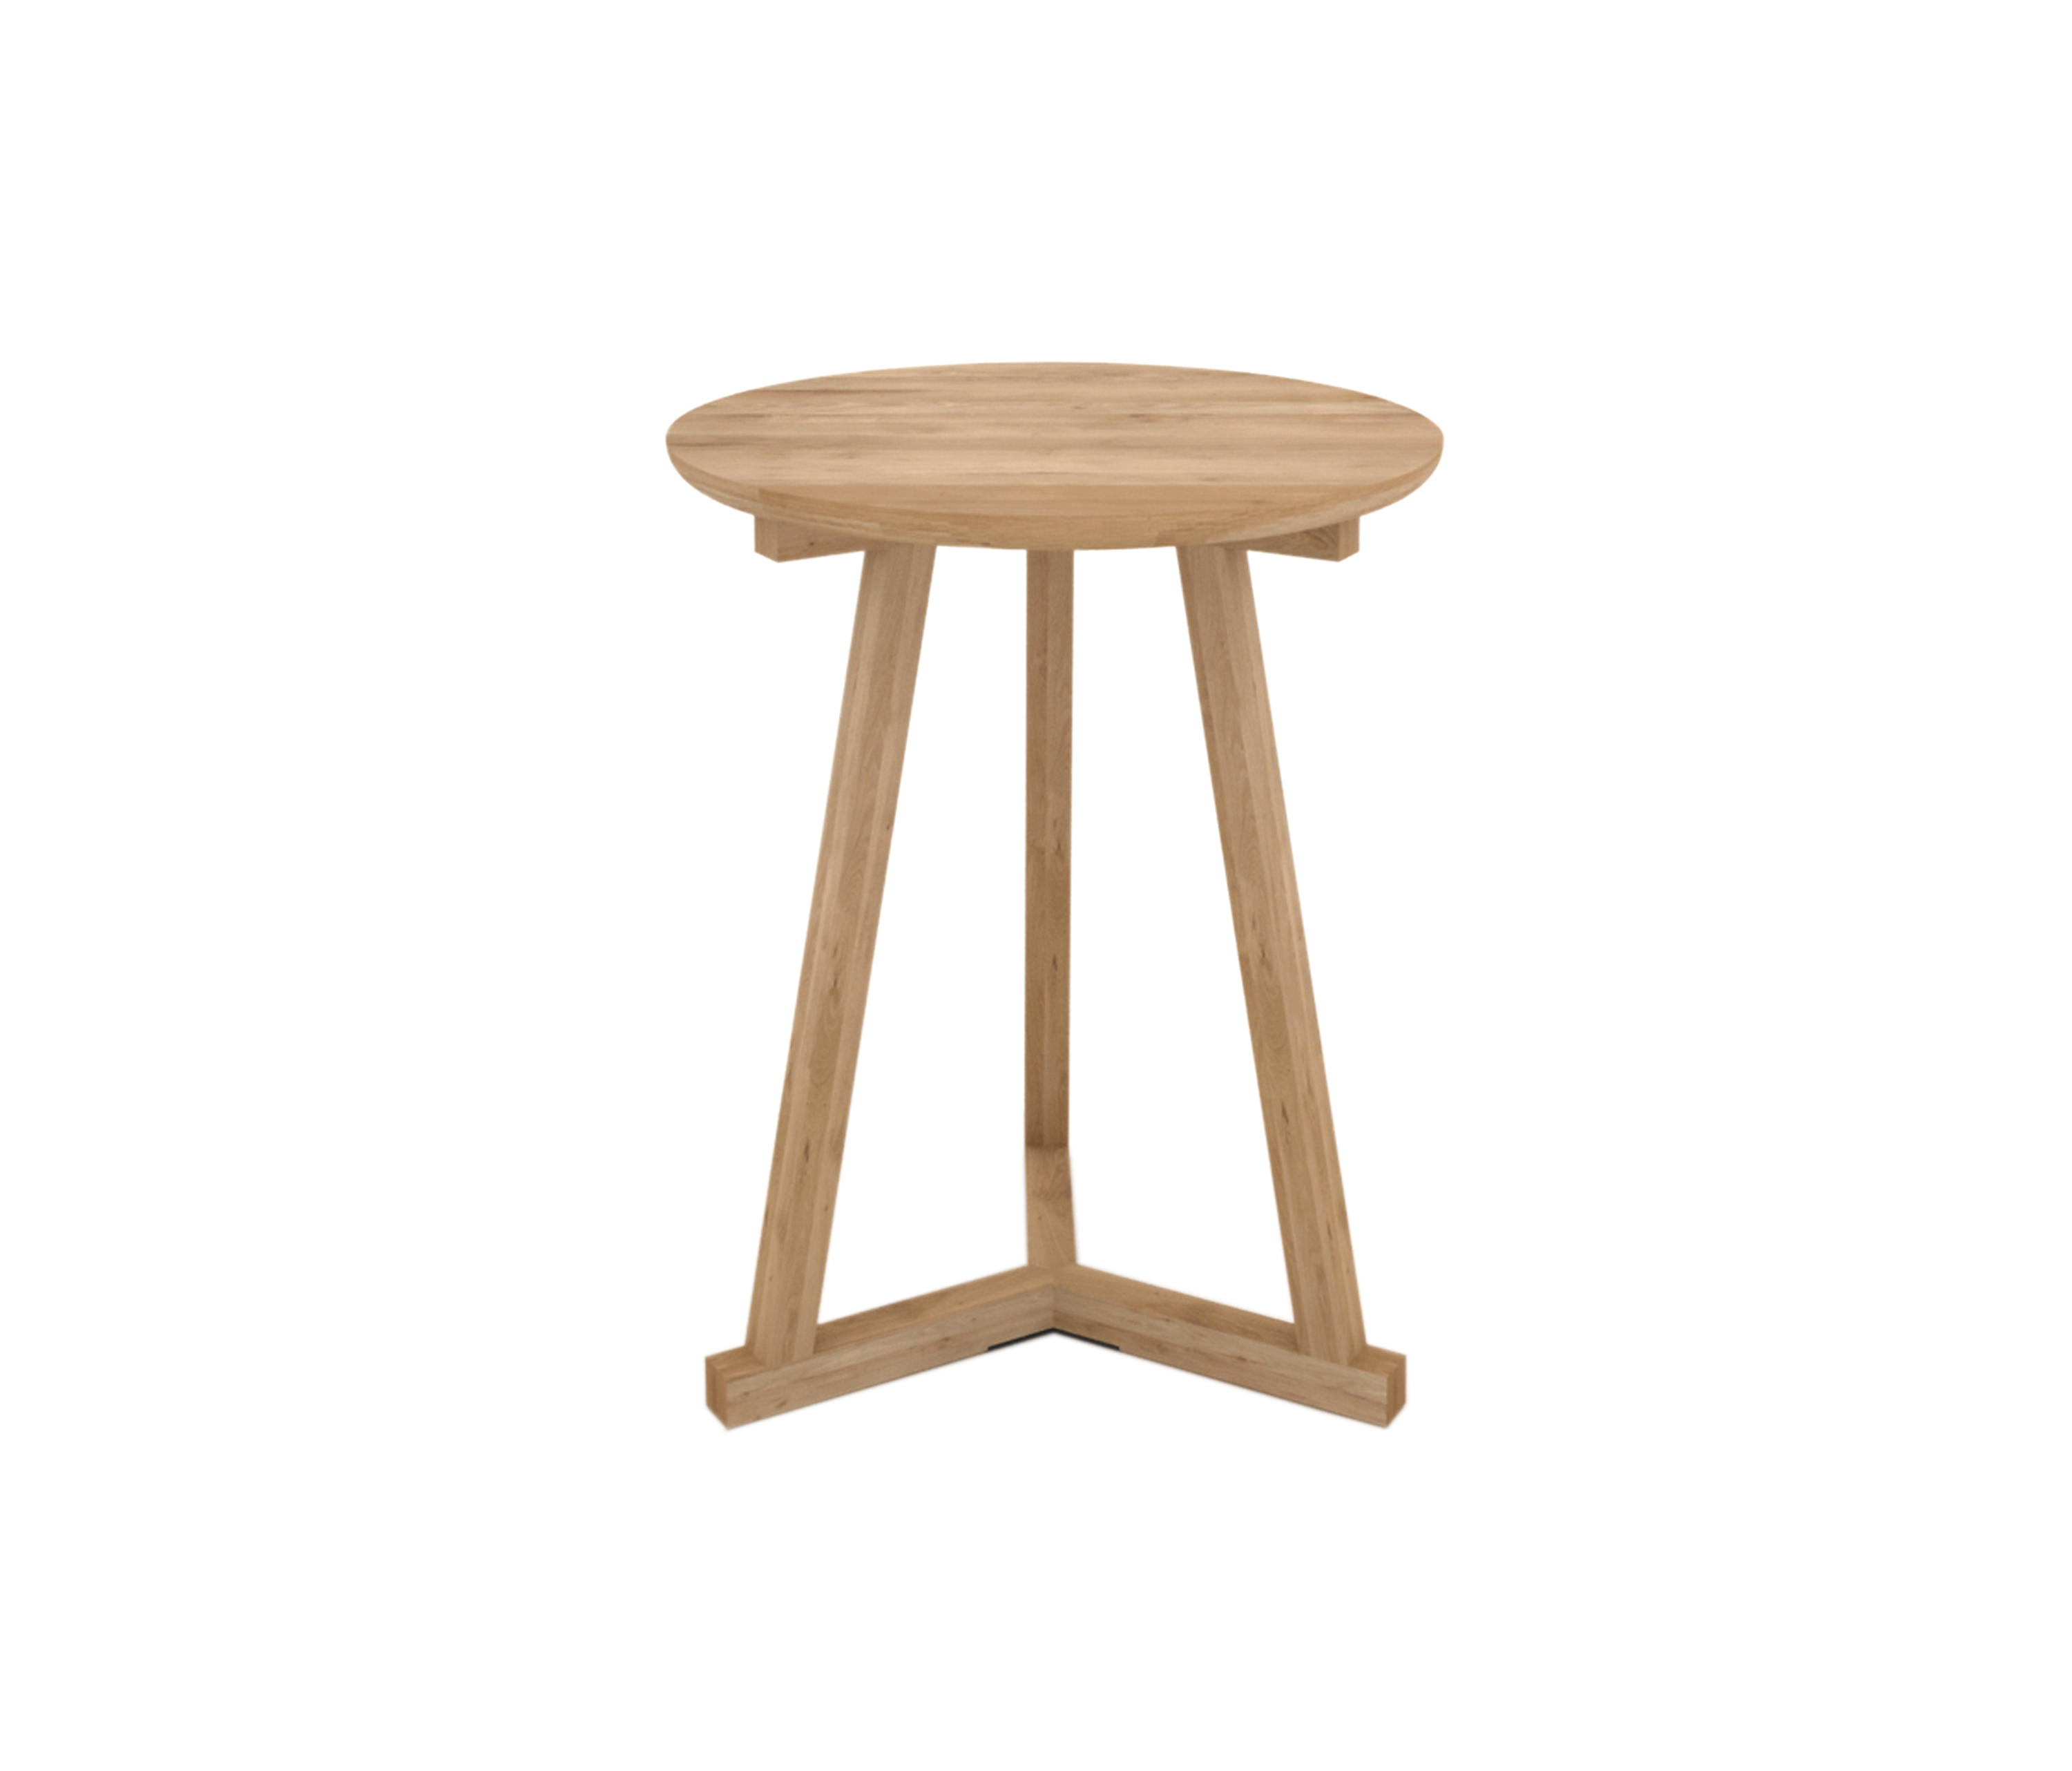 OAK TRIPOD SIDE TABLE - Side tables from Ethnicraft | Architonic